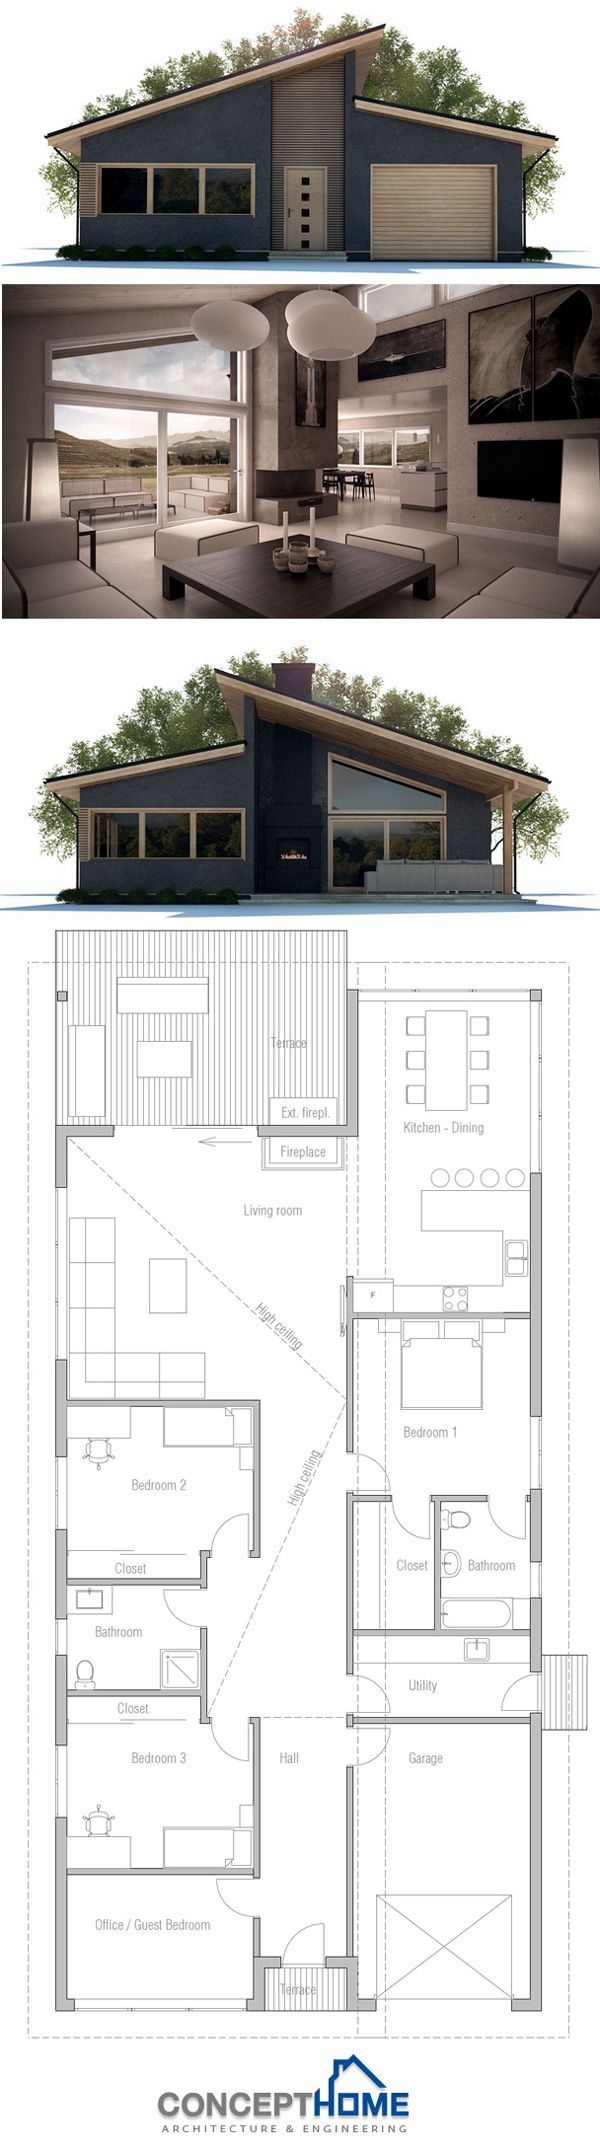 container house plan de maison plus who else wants simple step by step plans to design and build a container home from scratch - Simple Modern House Floor Plans